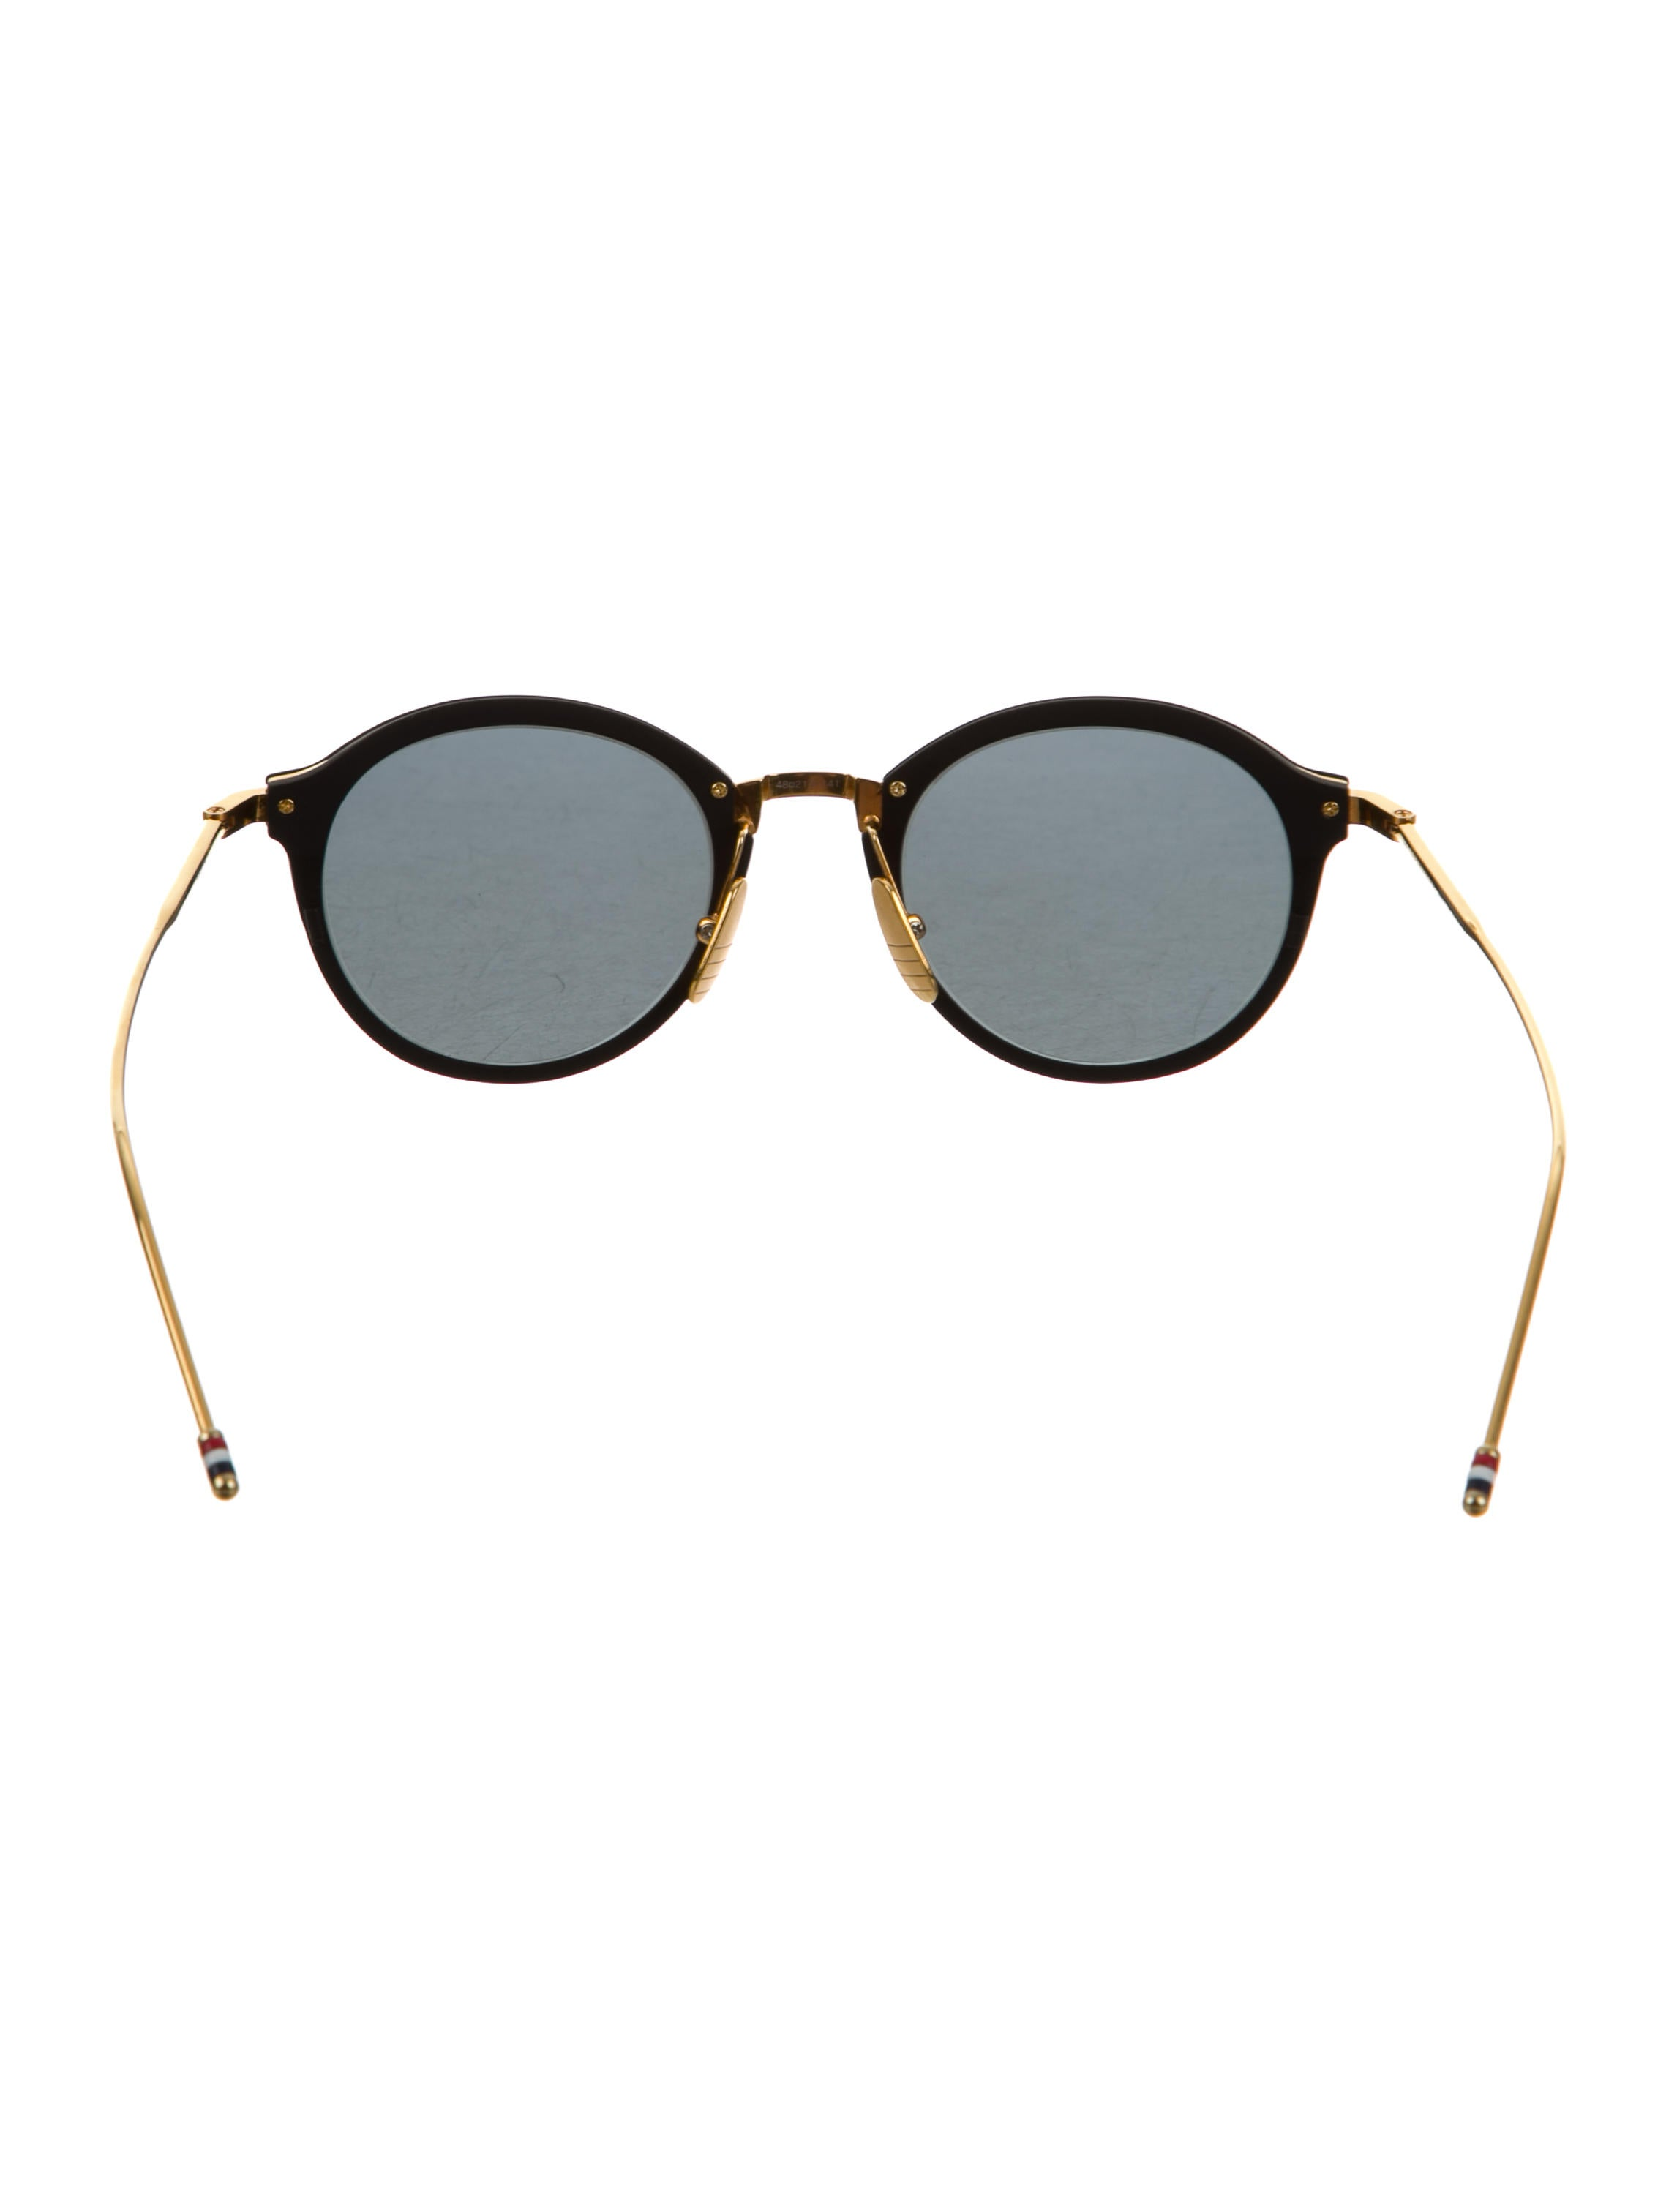 Round Gold Frame Sunglasses By Thom Browne : Thom Browne TB-110 Round Sunglasses - Accessories ...